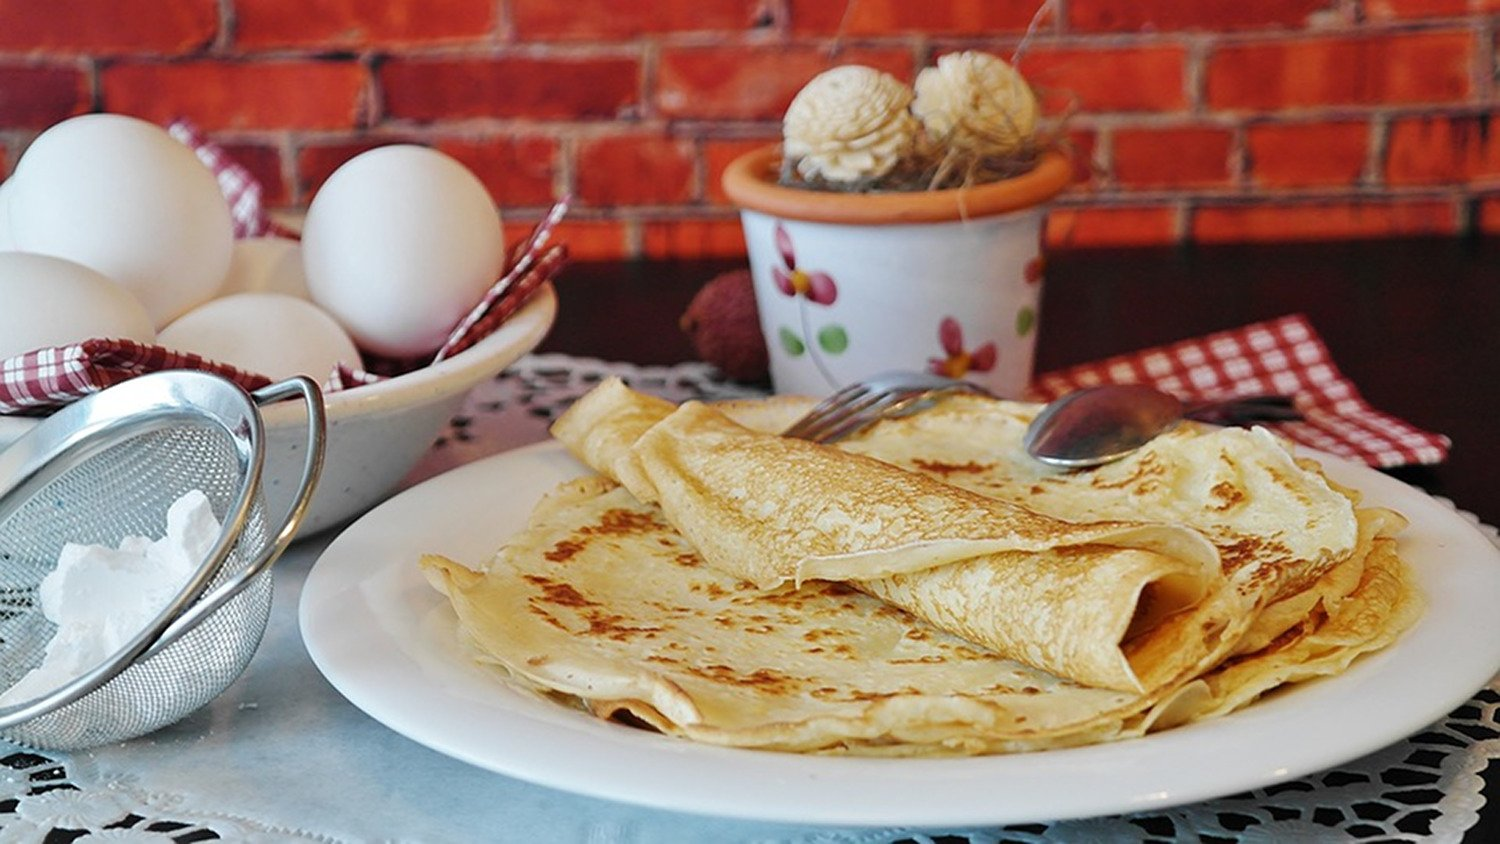 Comfortable Sizes Will Fit Any Crepe Pan 4 Piece Crepe Spreader and Spatula Set All Natural Beechwood and Finish Made by Craft Kitchen 5 Profoco Crepe Spatula 14 and 3.5, 5, 7 Crepe Spreaders